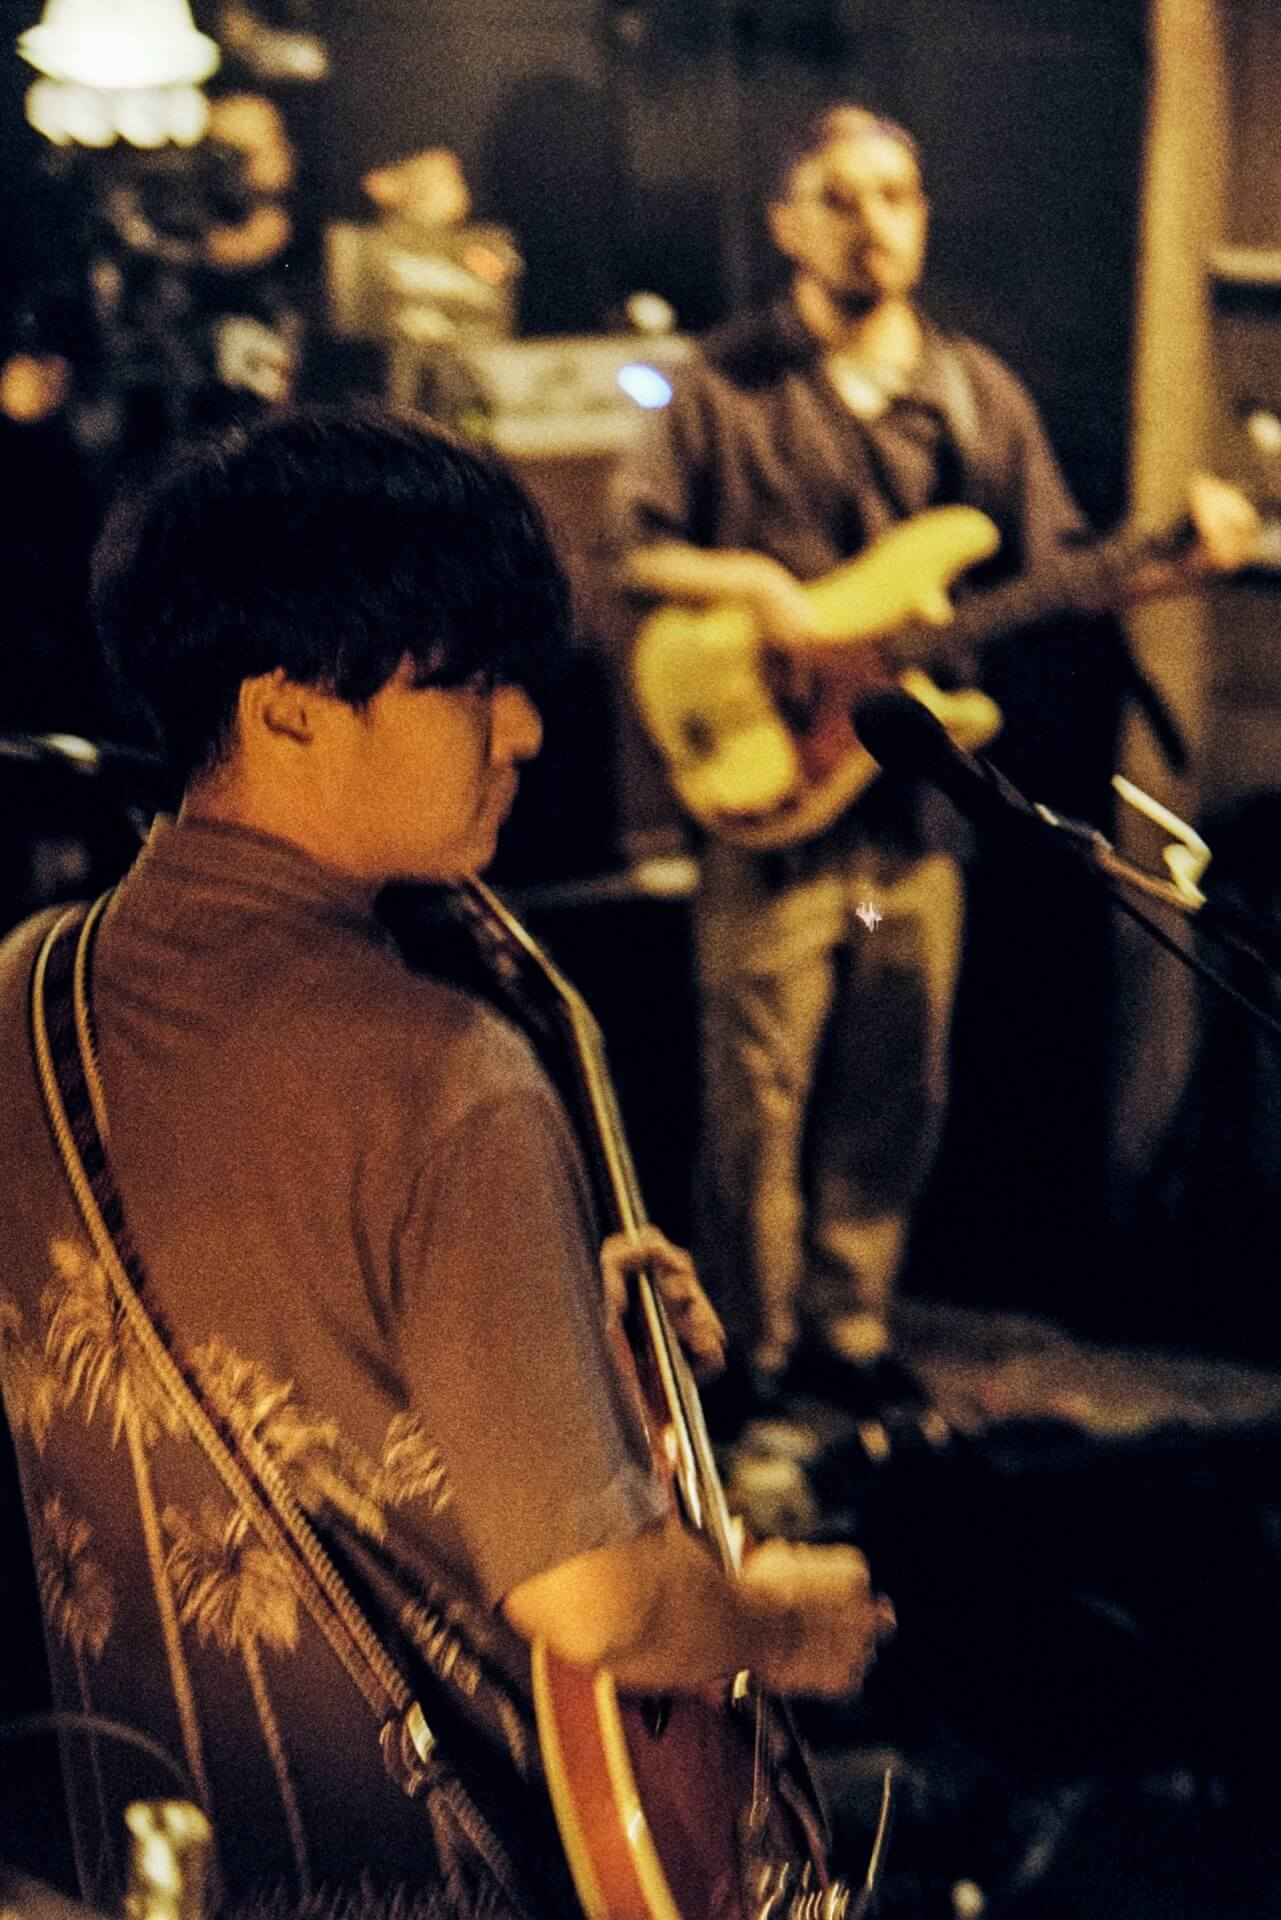 〜 LIVEWIRE Suchmos From The Window 〜【Photo Documentary】 music200721_suchmos_live_4